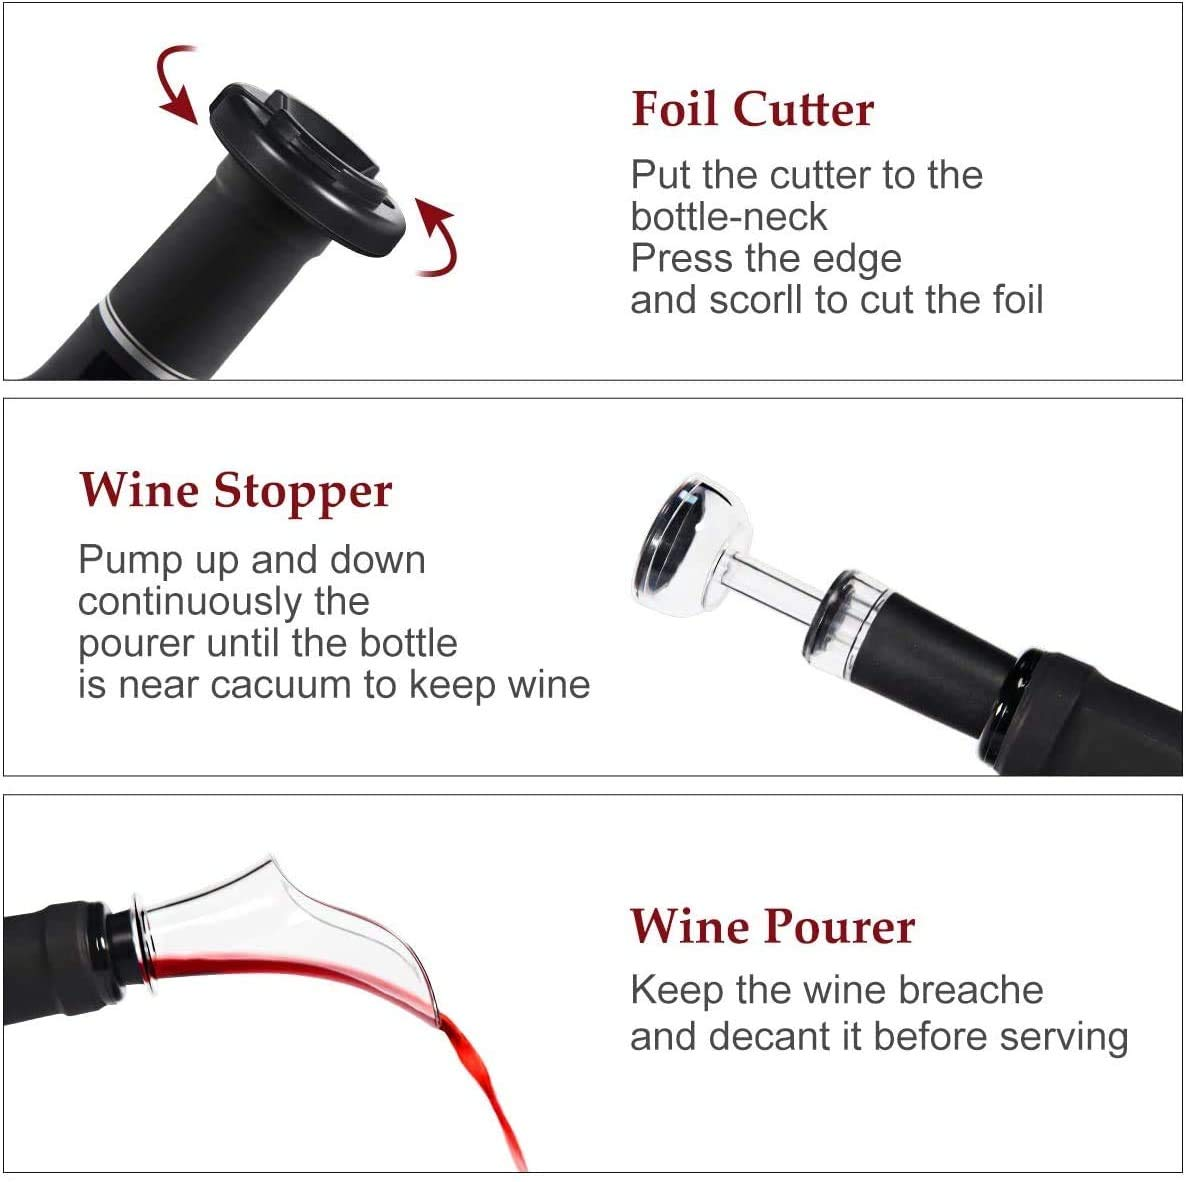 why we need foil cutter - wine stopper - Wine Pourer